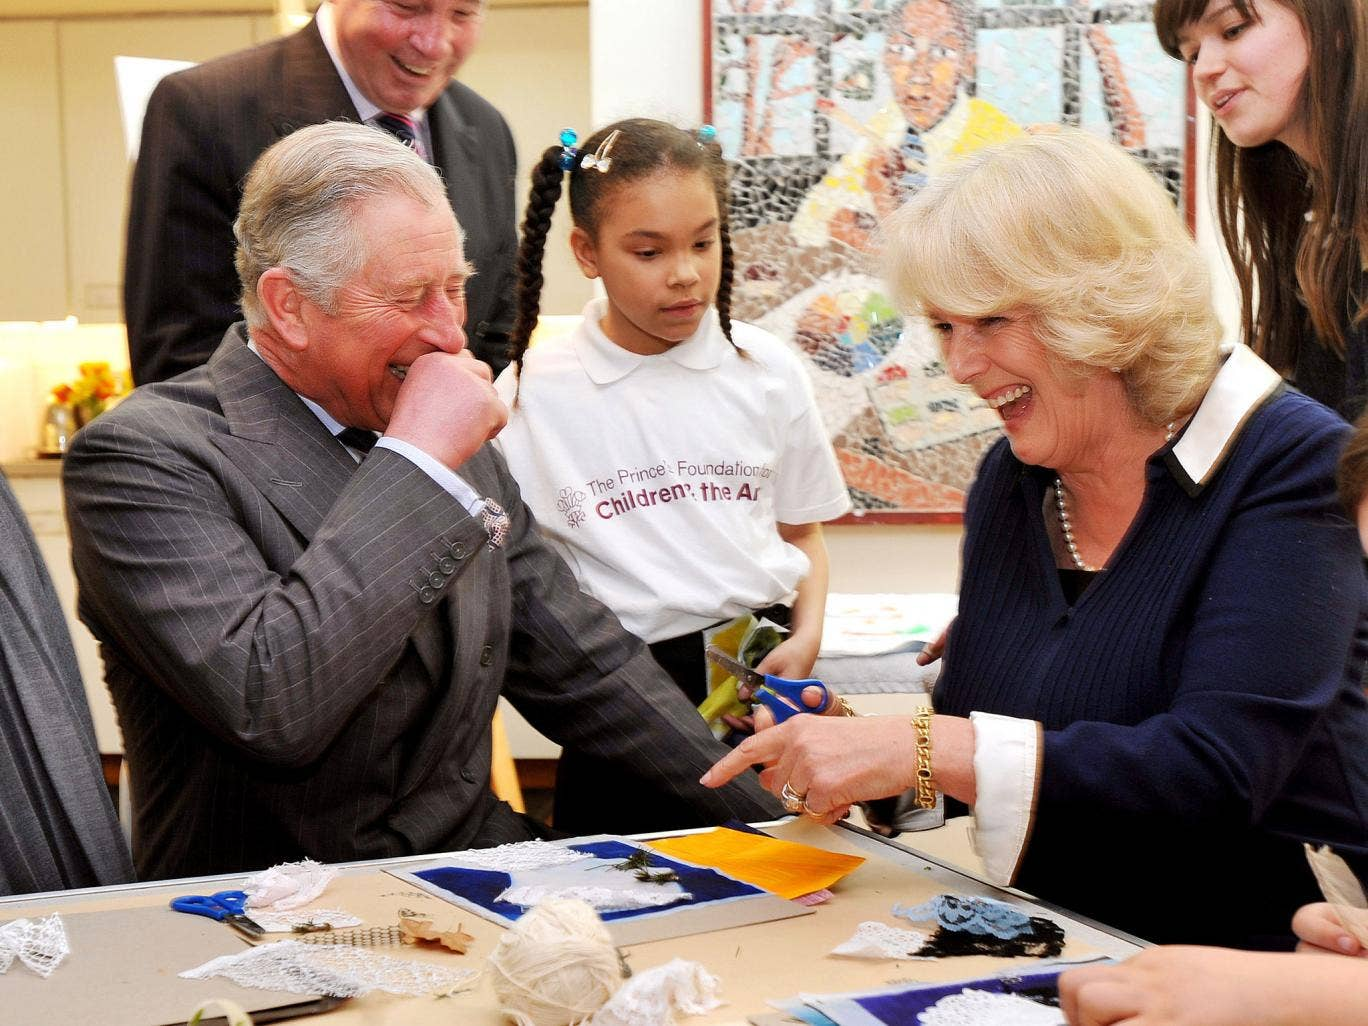 Prince Charles and the Duchess of Cornwall during a visit to the Dulwich Picture Gallery last year to see work done by the Prince's Foundation for Children and the Arts